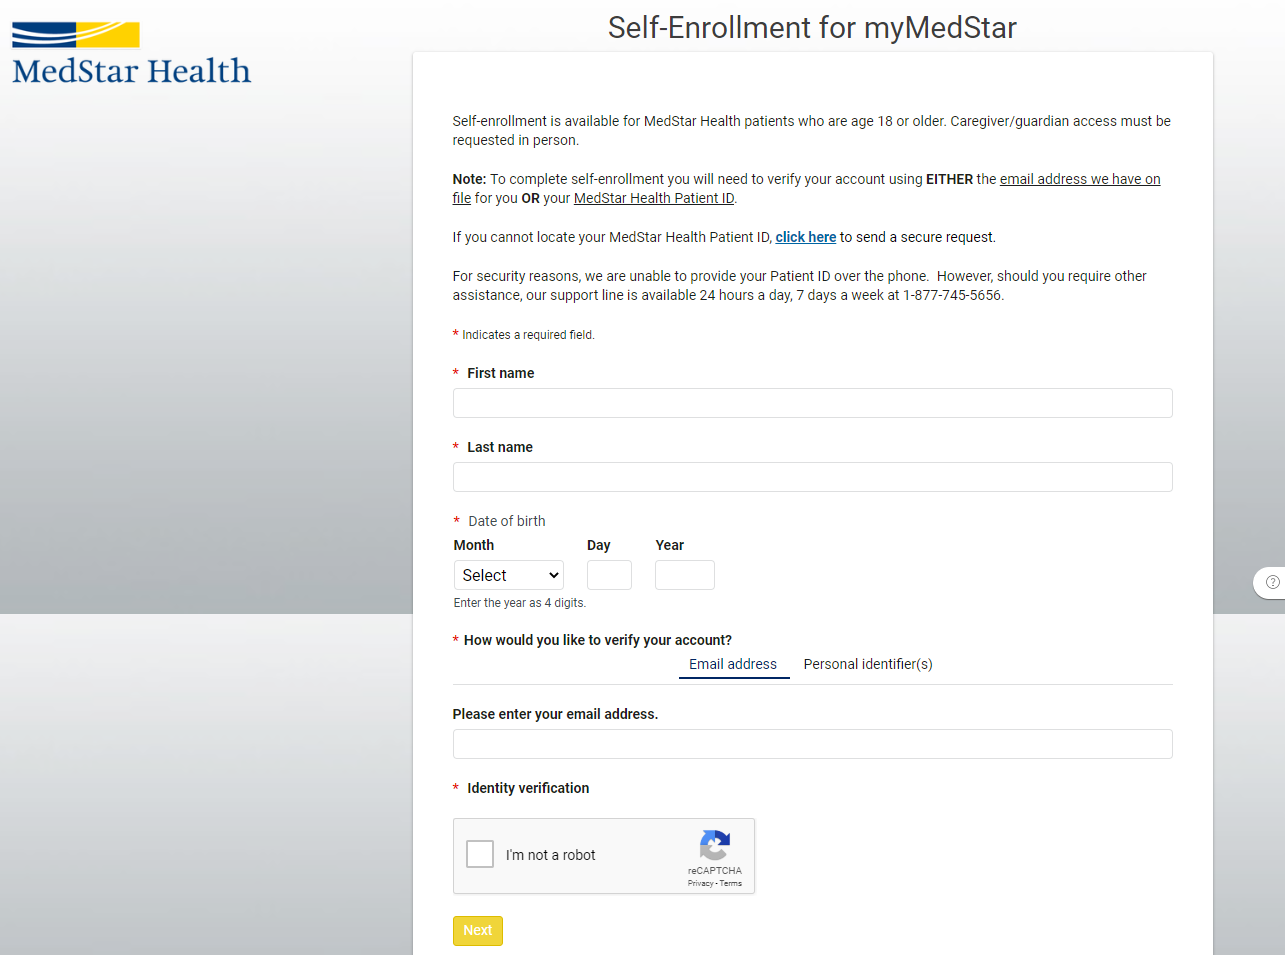 myMedStar_Self_Enrollment